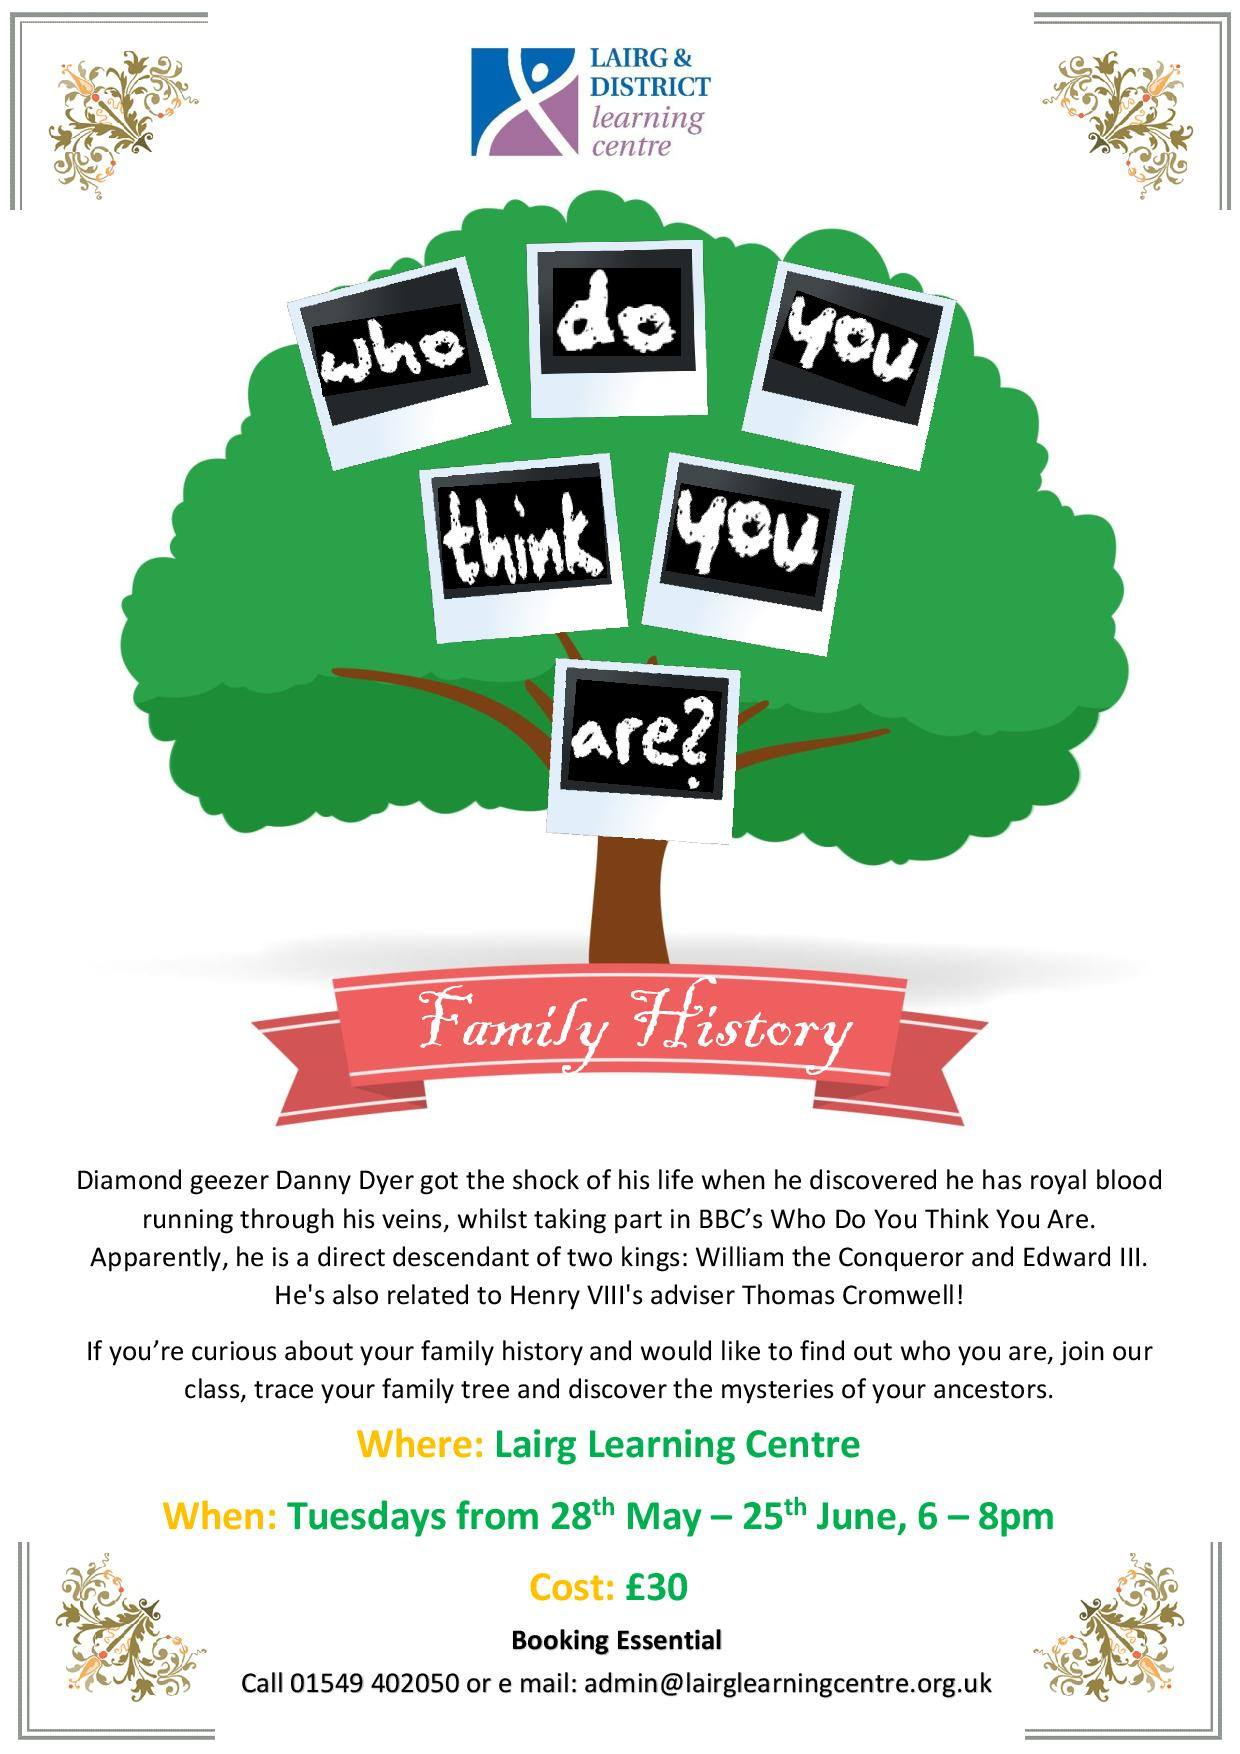 Lairg Learning Centre Family History Course